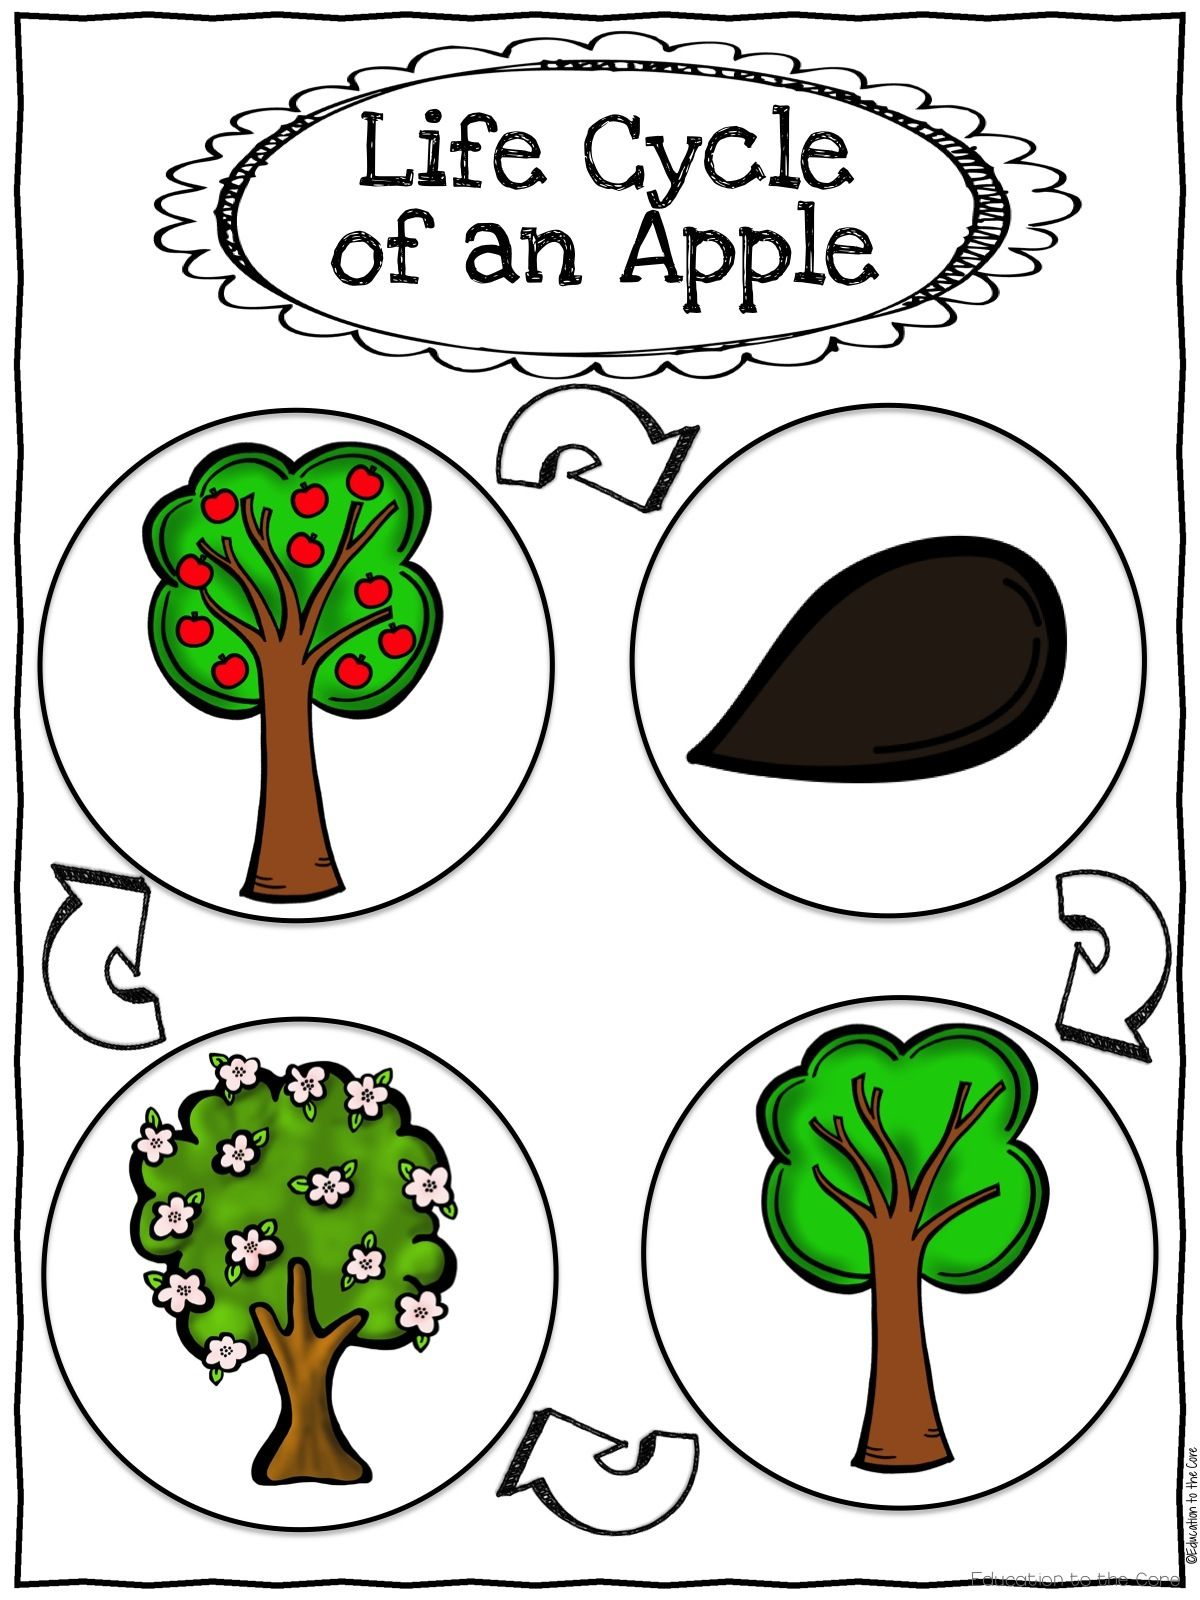 Free Apple Tree Life Cycle Worksheet   Printable Worksheets and Activities  for Teachers [ 1600 x 1200 Pixel ]